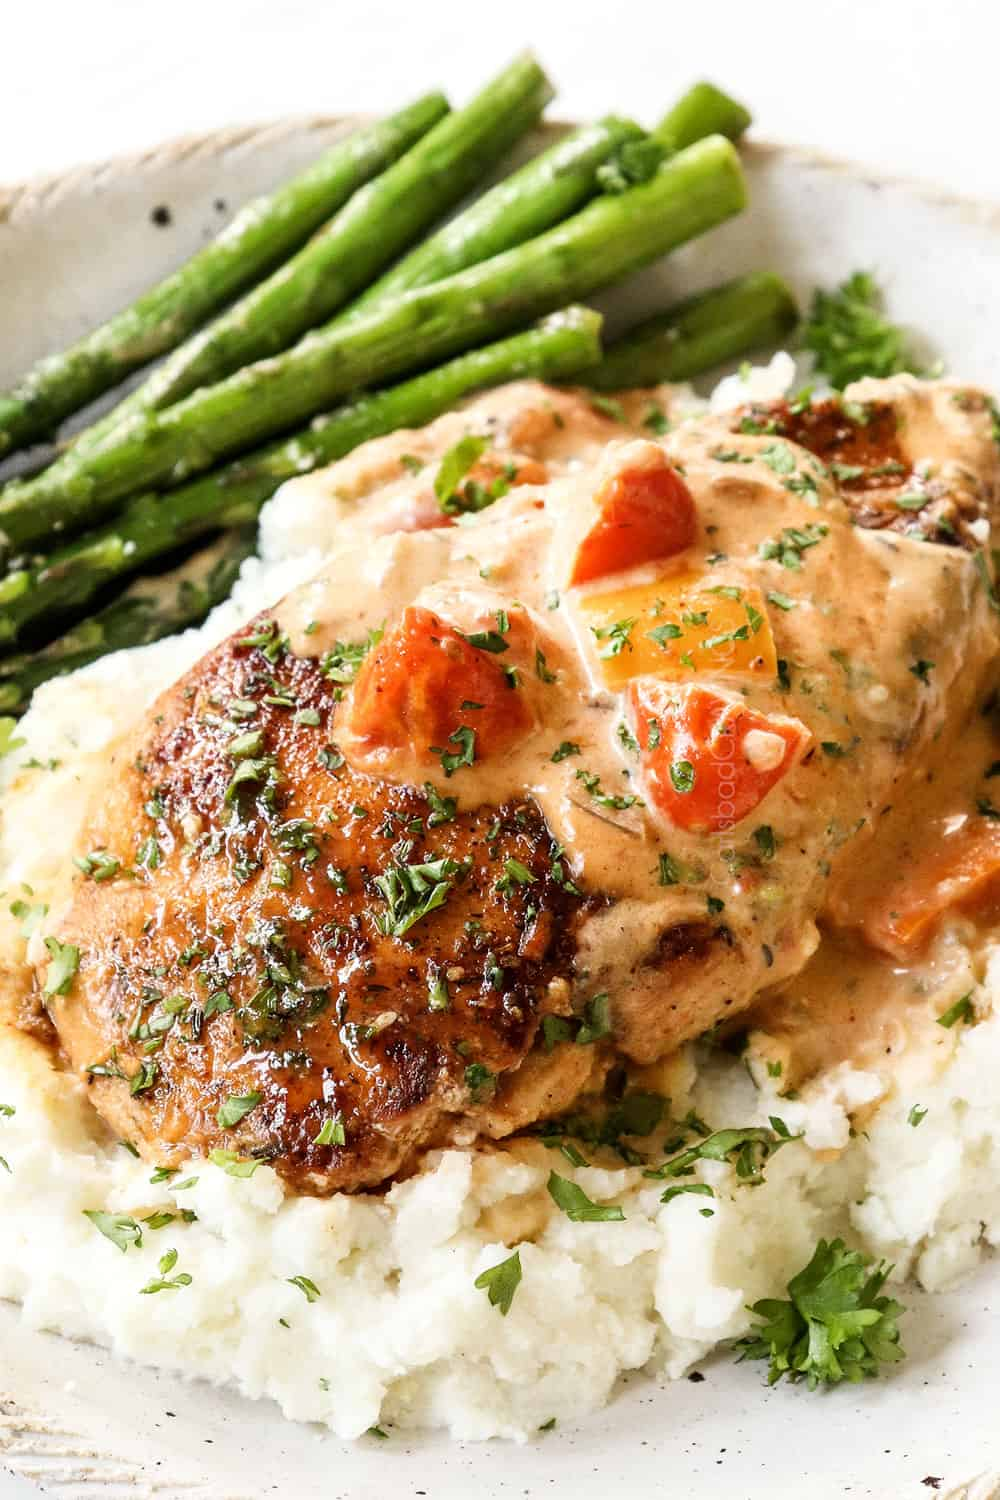 up close of a piece of Cajun chicken on a plate with mashed potatoes and asparagus